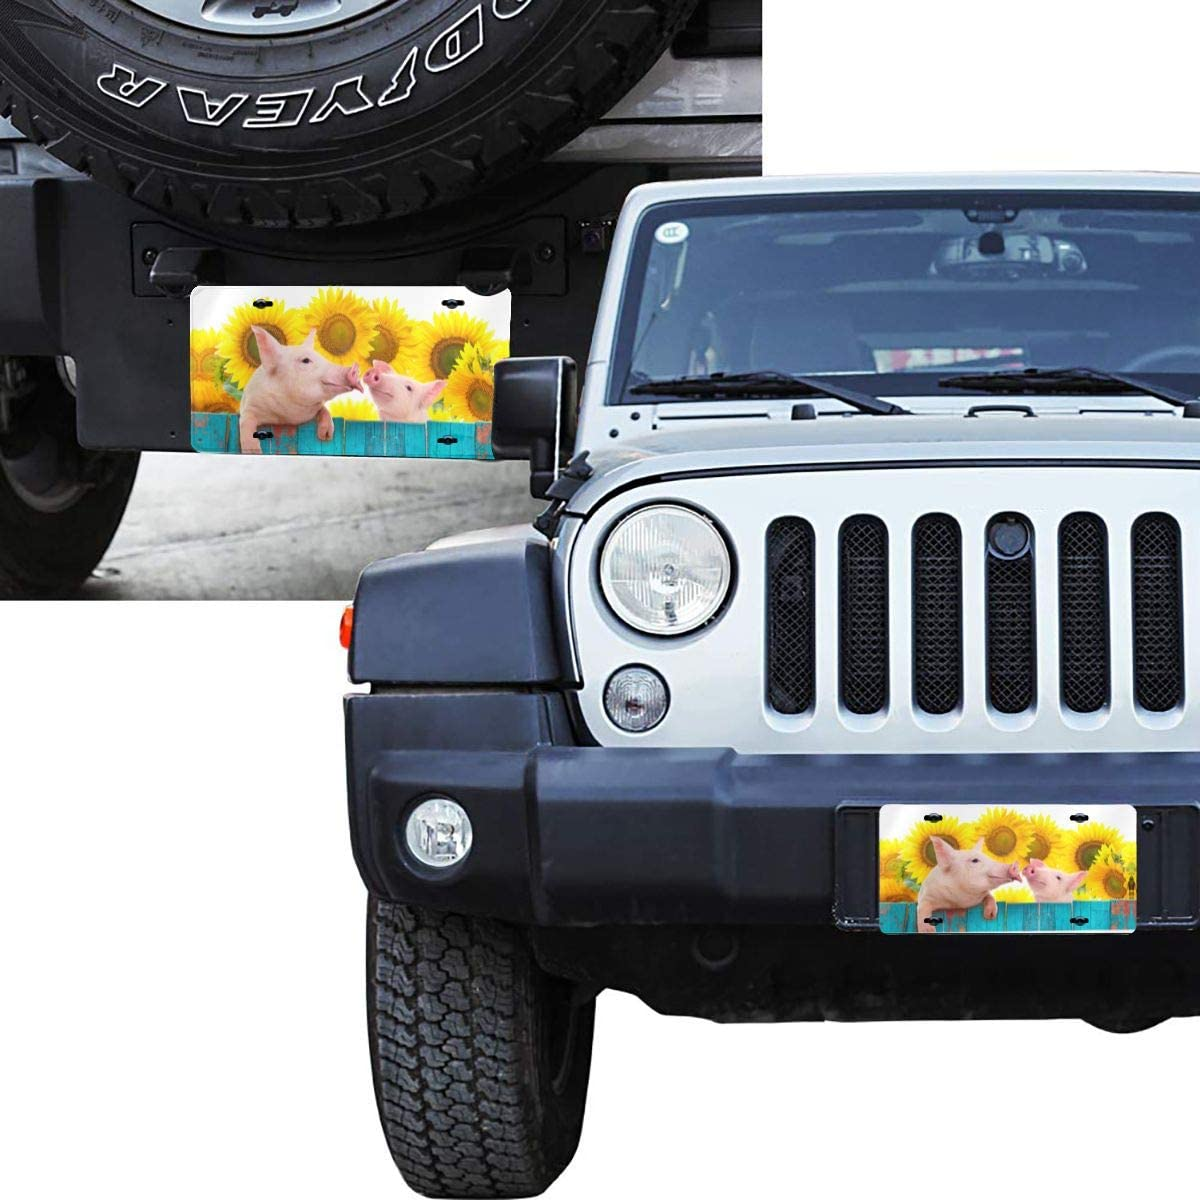 6 X 12 in Funny Pig Hanging Car Tag Cover Decorative License Plates for Front of Car Durable Metal Car Plate for Women//Girls//Men//Boys Vanity Gifts Dujiea License Plate Aluminum